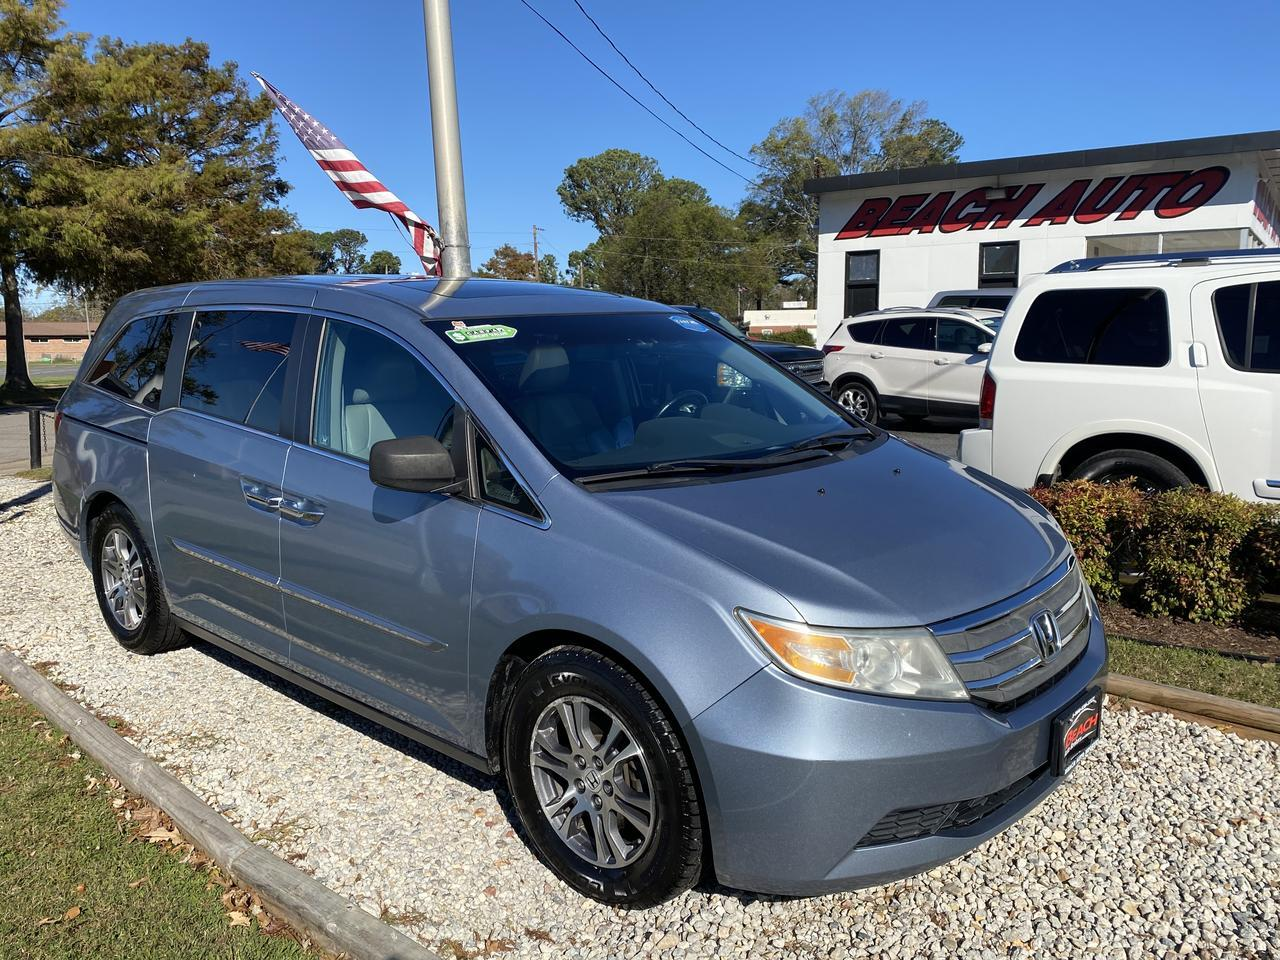 2011 HONDA ODYSSEY EX-L, WARRANTY, LEATHER, DVD PLAYER, CAPTAINS CHAIRS, BLUETOOTH, BACKUP CAM, 1 OWNER, CLEAN CARFAX! Norfolk VA